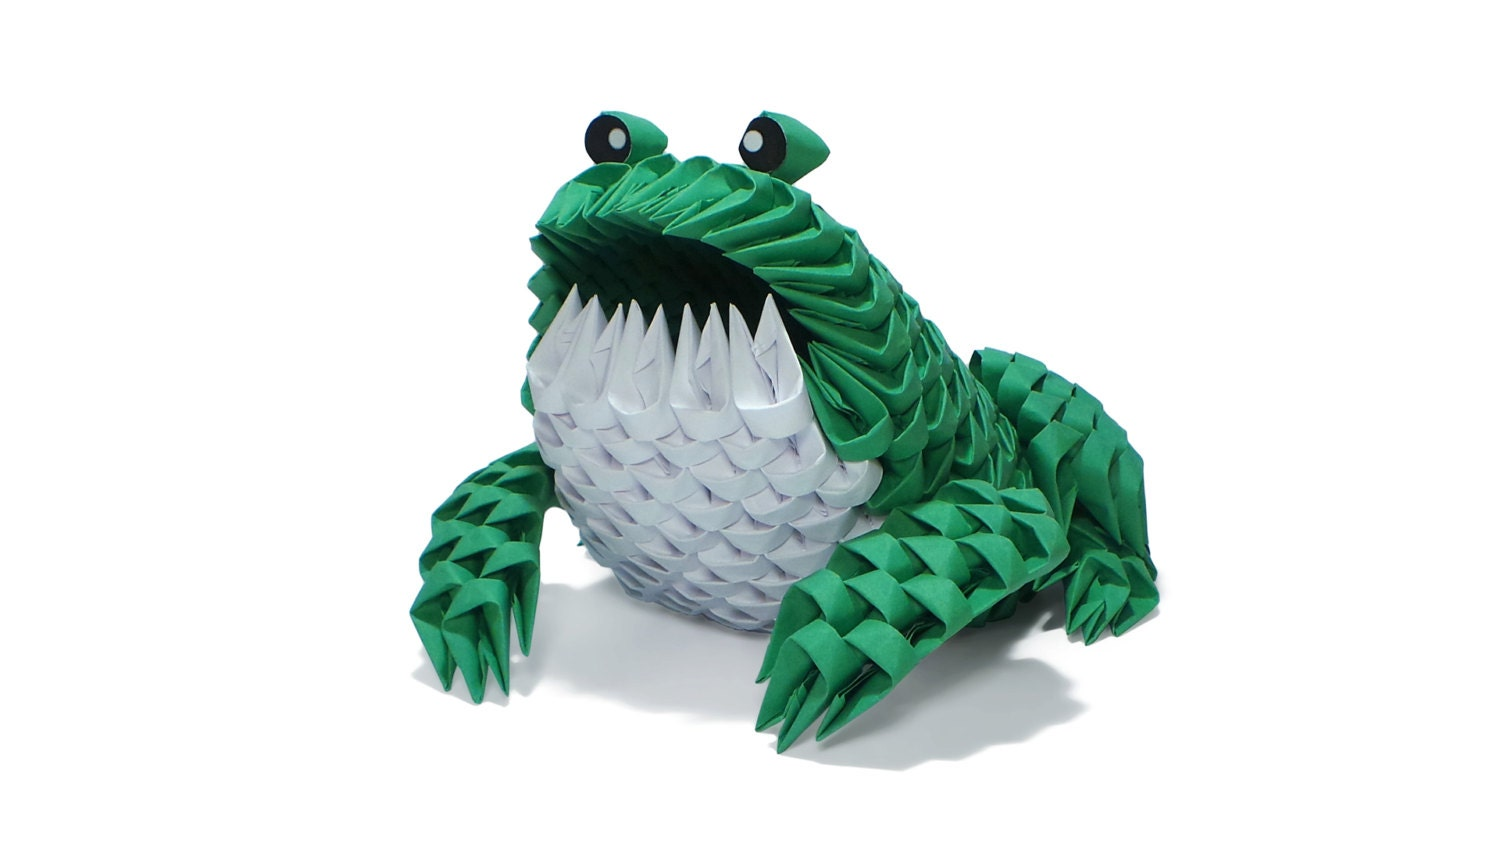 3D Origami Frog by Girnelis on Etsy - photo#10